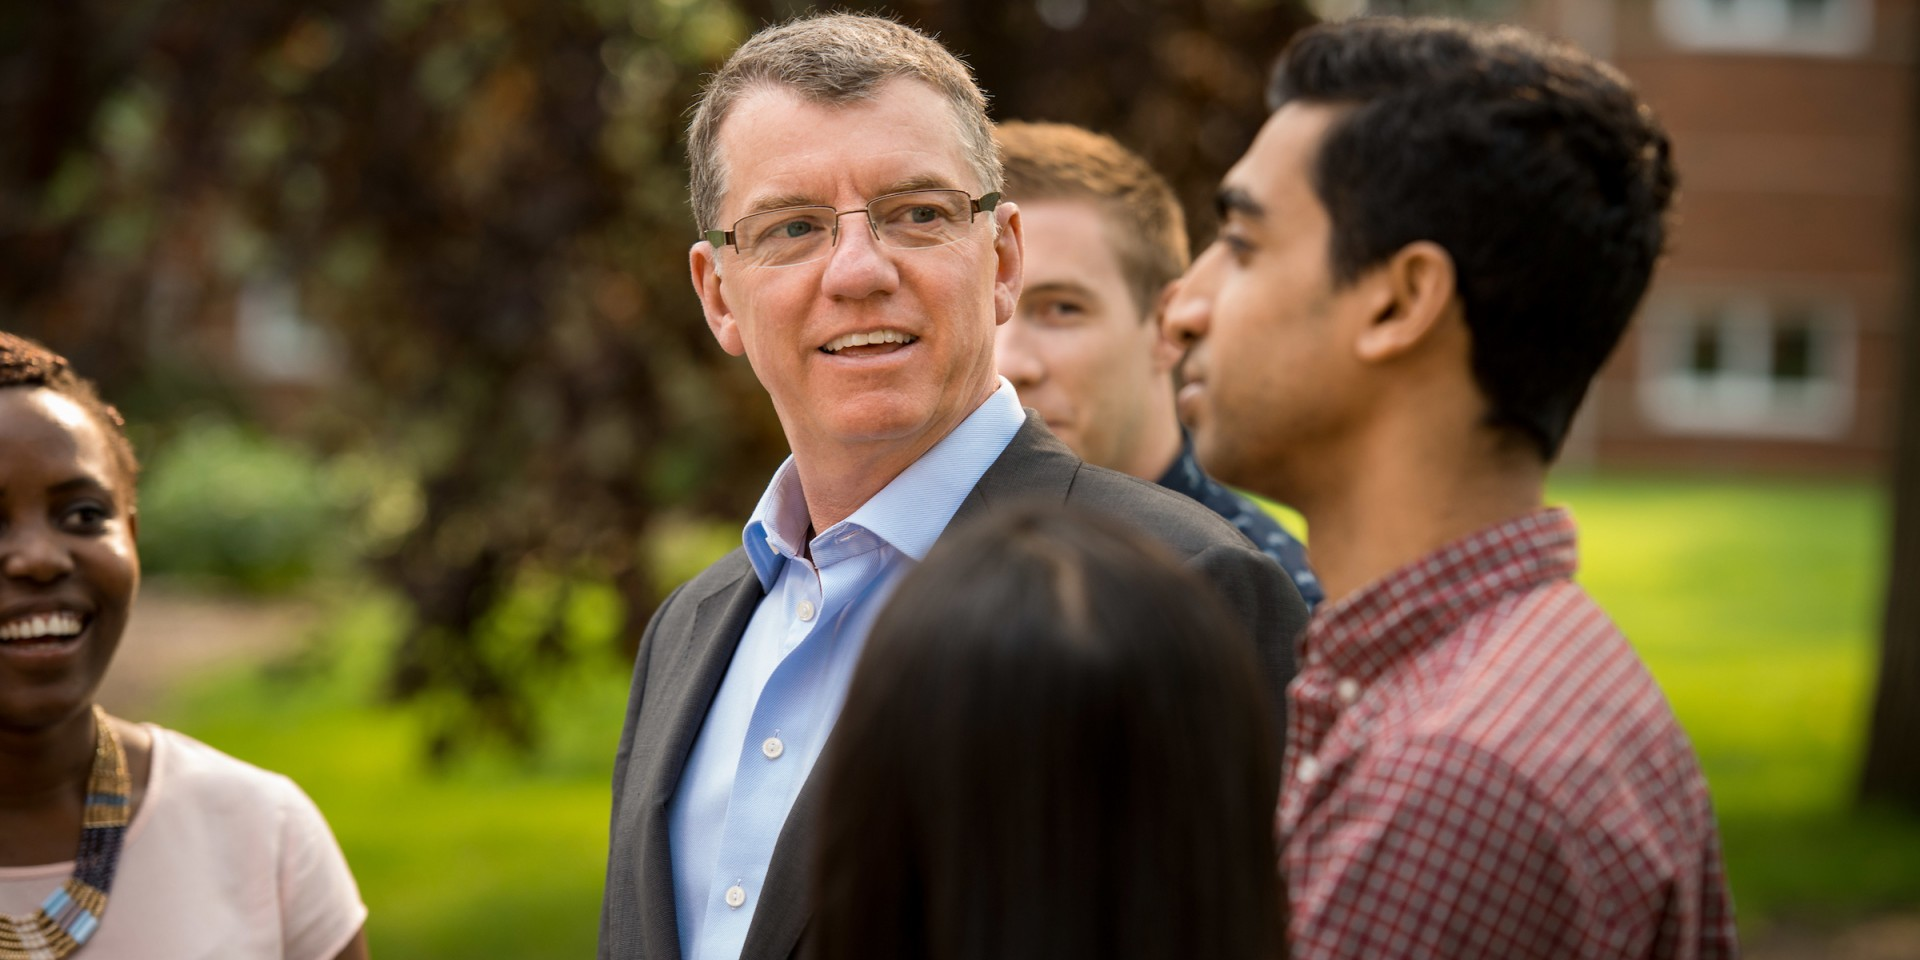 It was one of the most difficult decisions of his career, said University of Alberta president David H. Turpin as he announced he will finish his current term, ending on June 30, 2020, but will not seek a second term. (Photo: Richard Siemens)